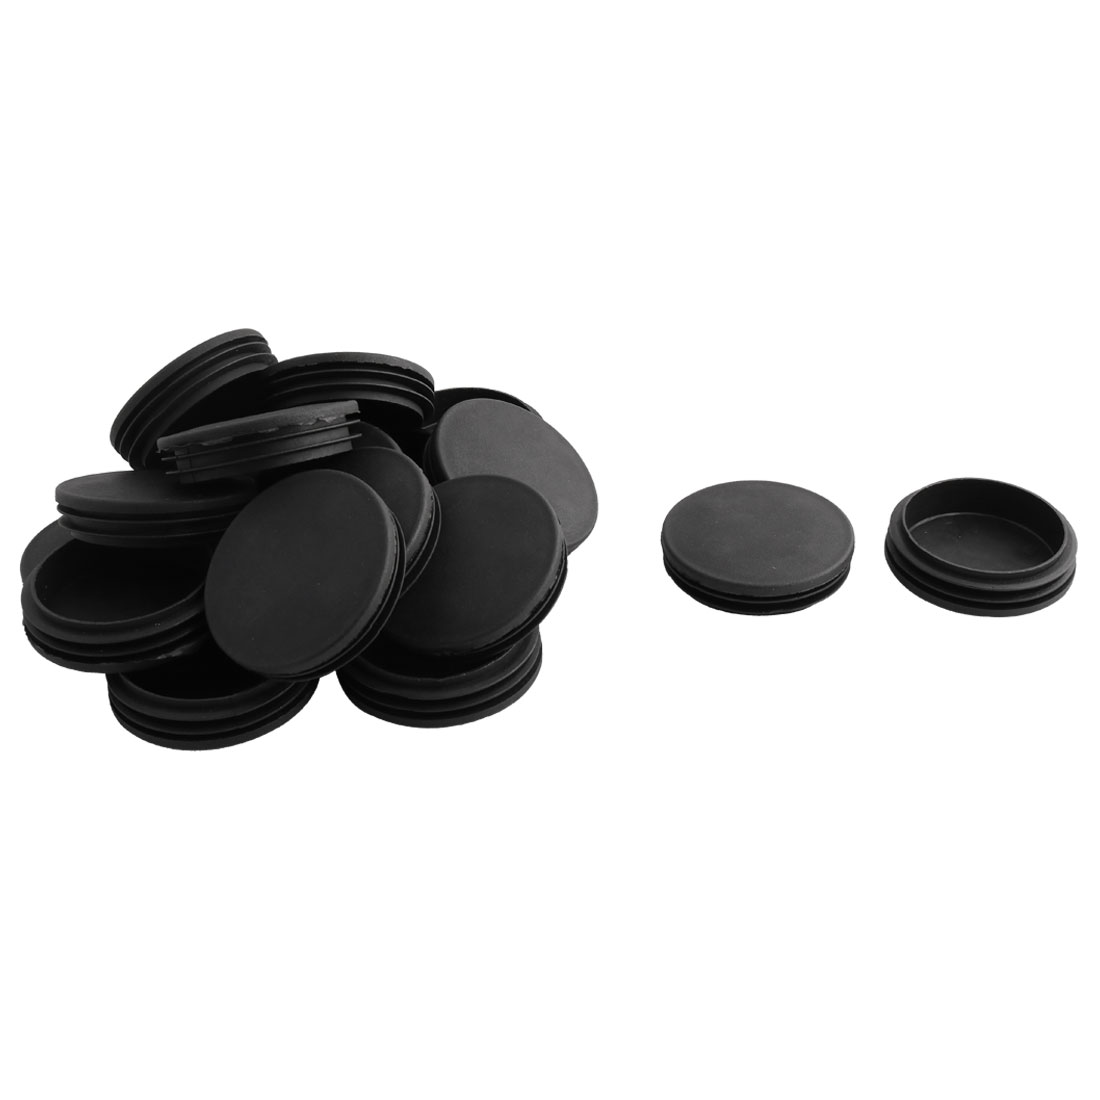 Household Office Plastic Round Furniture Legs Tube Insert Black 74mm Dia 18 Pcs